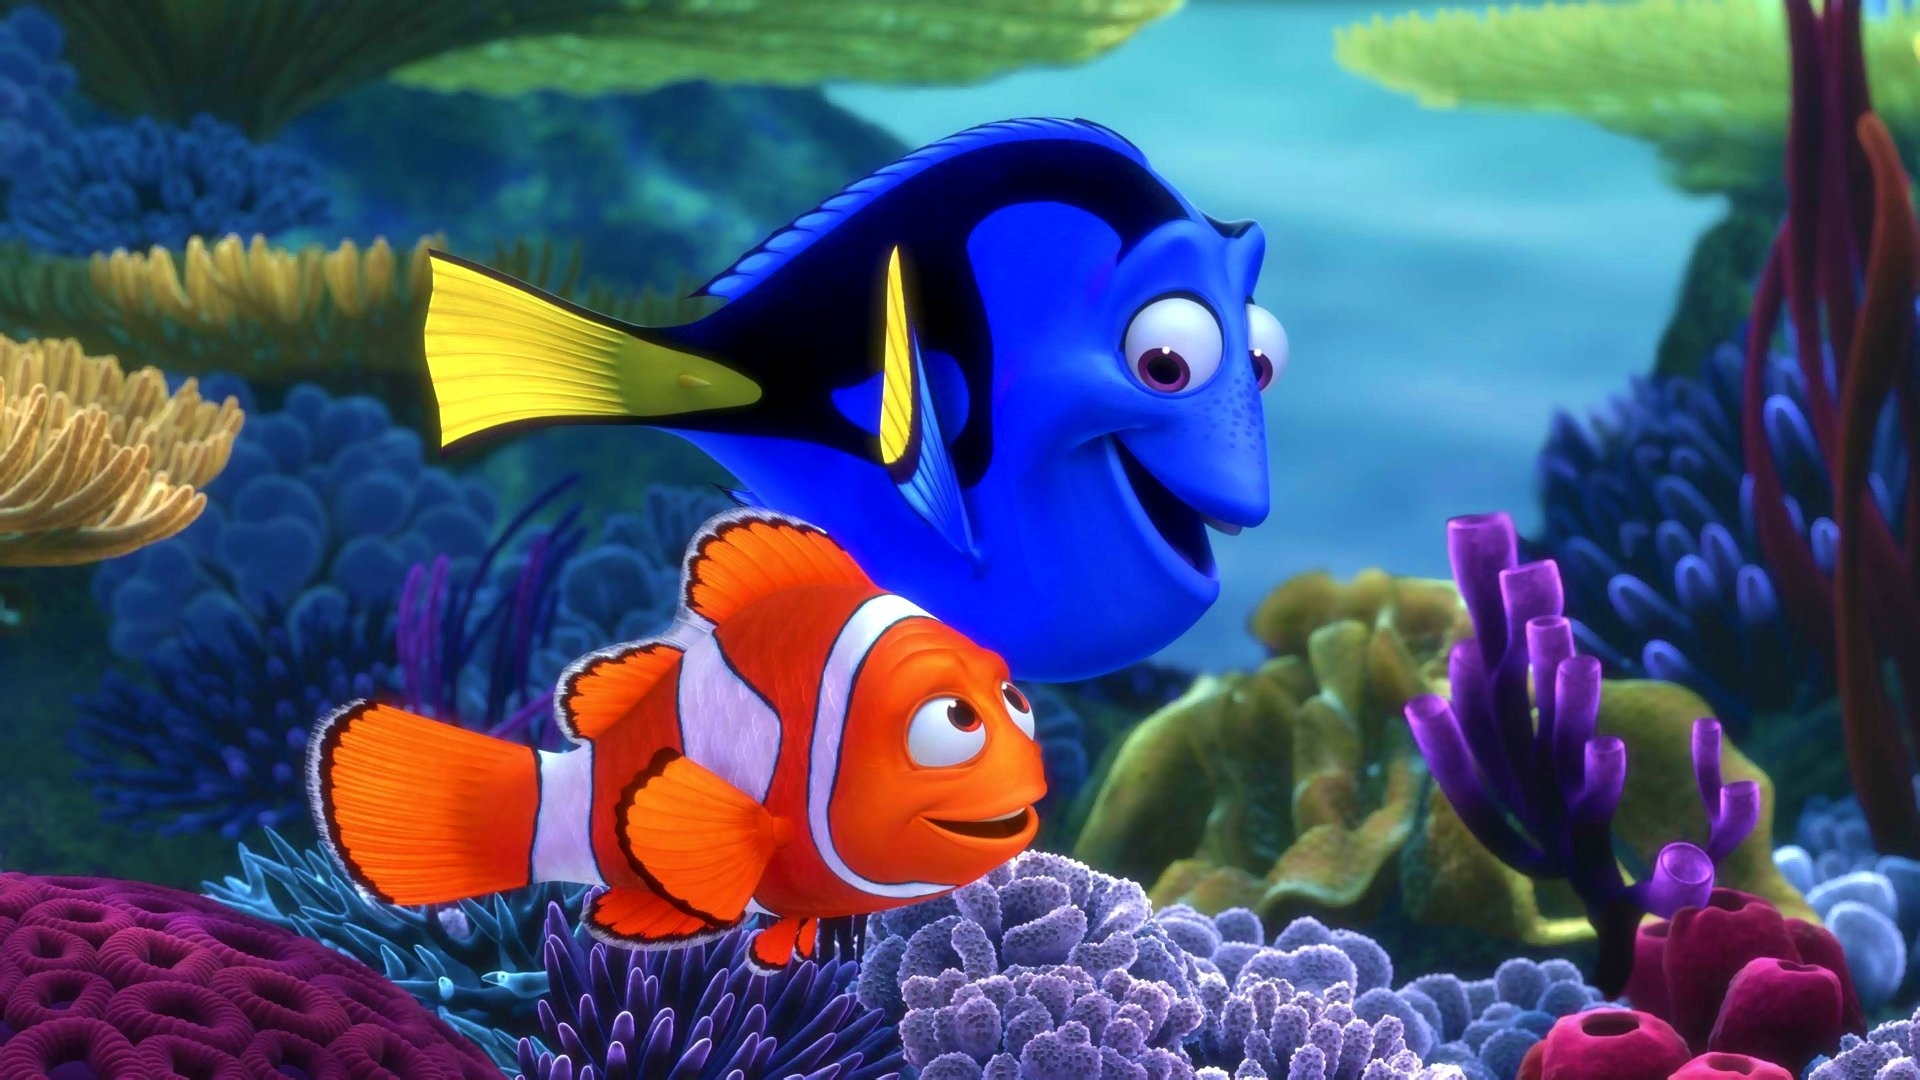 10 Latest Finding Nemo Hd Wallpaper FULL HD 1080p For PC Desktop